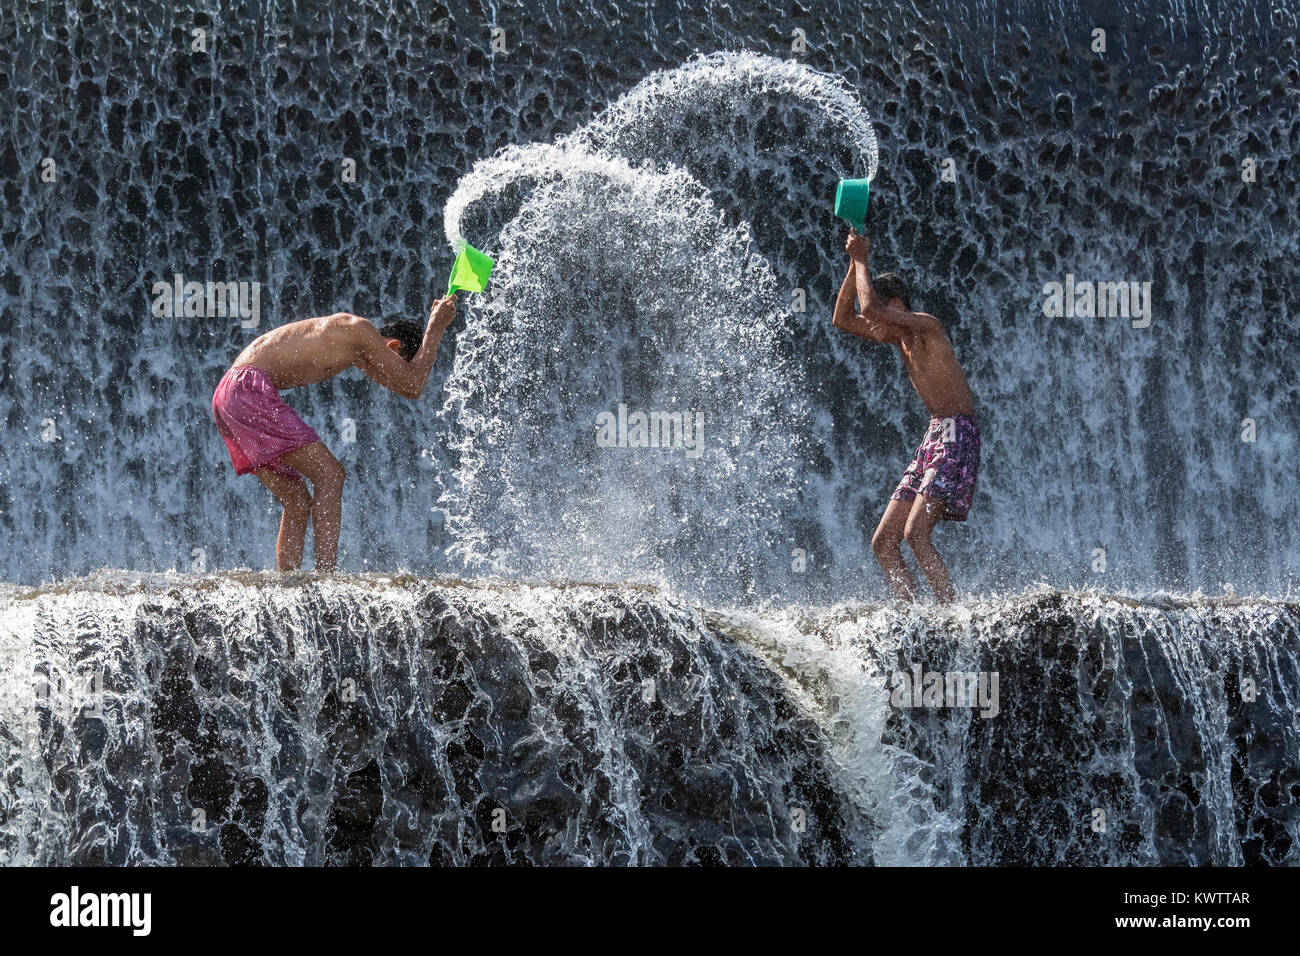 Two boys playing in the water at Tukad Unda dam on a hot day, Bali Island, Indonesia - Stock Image